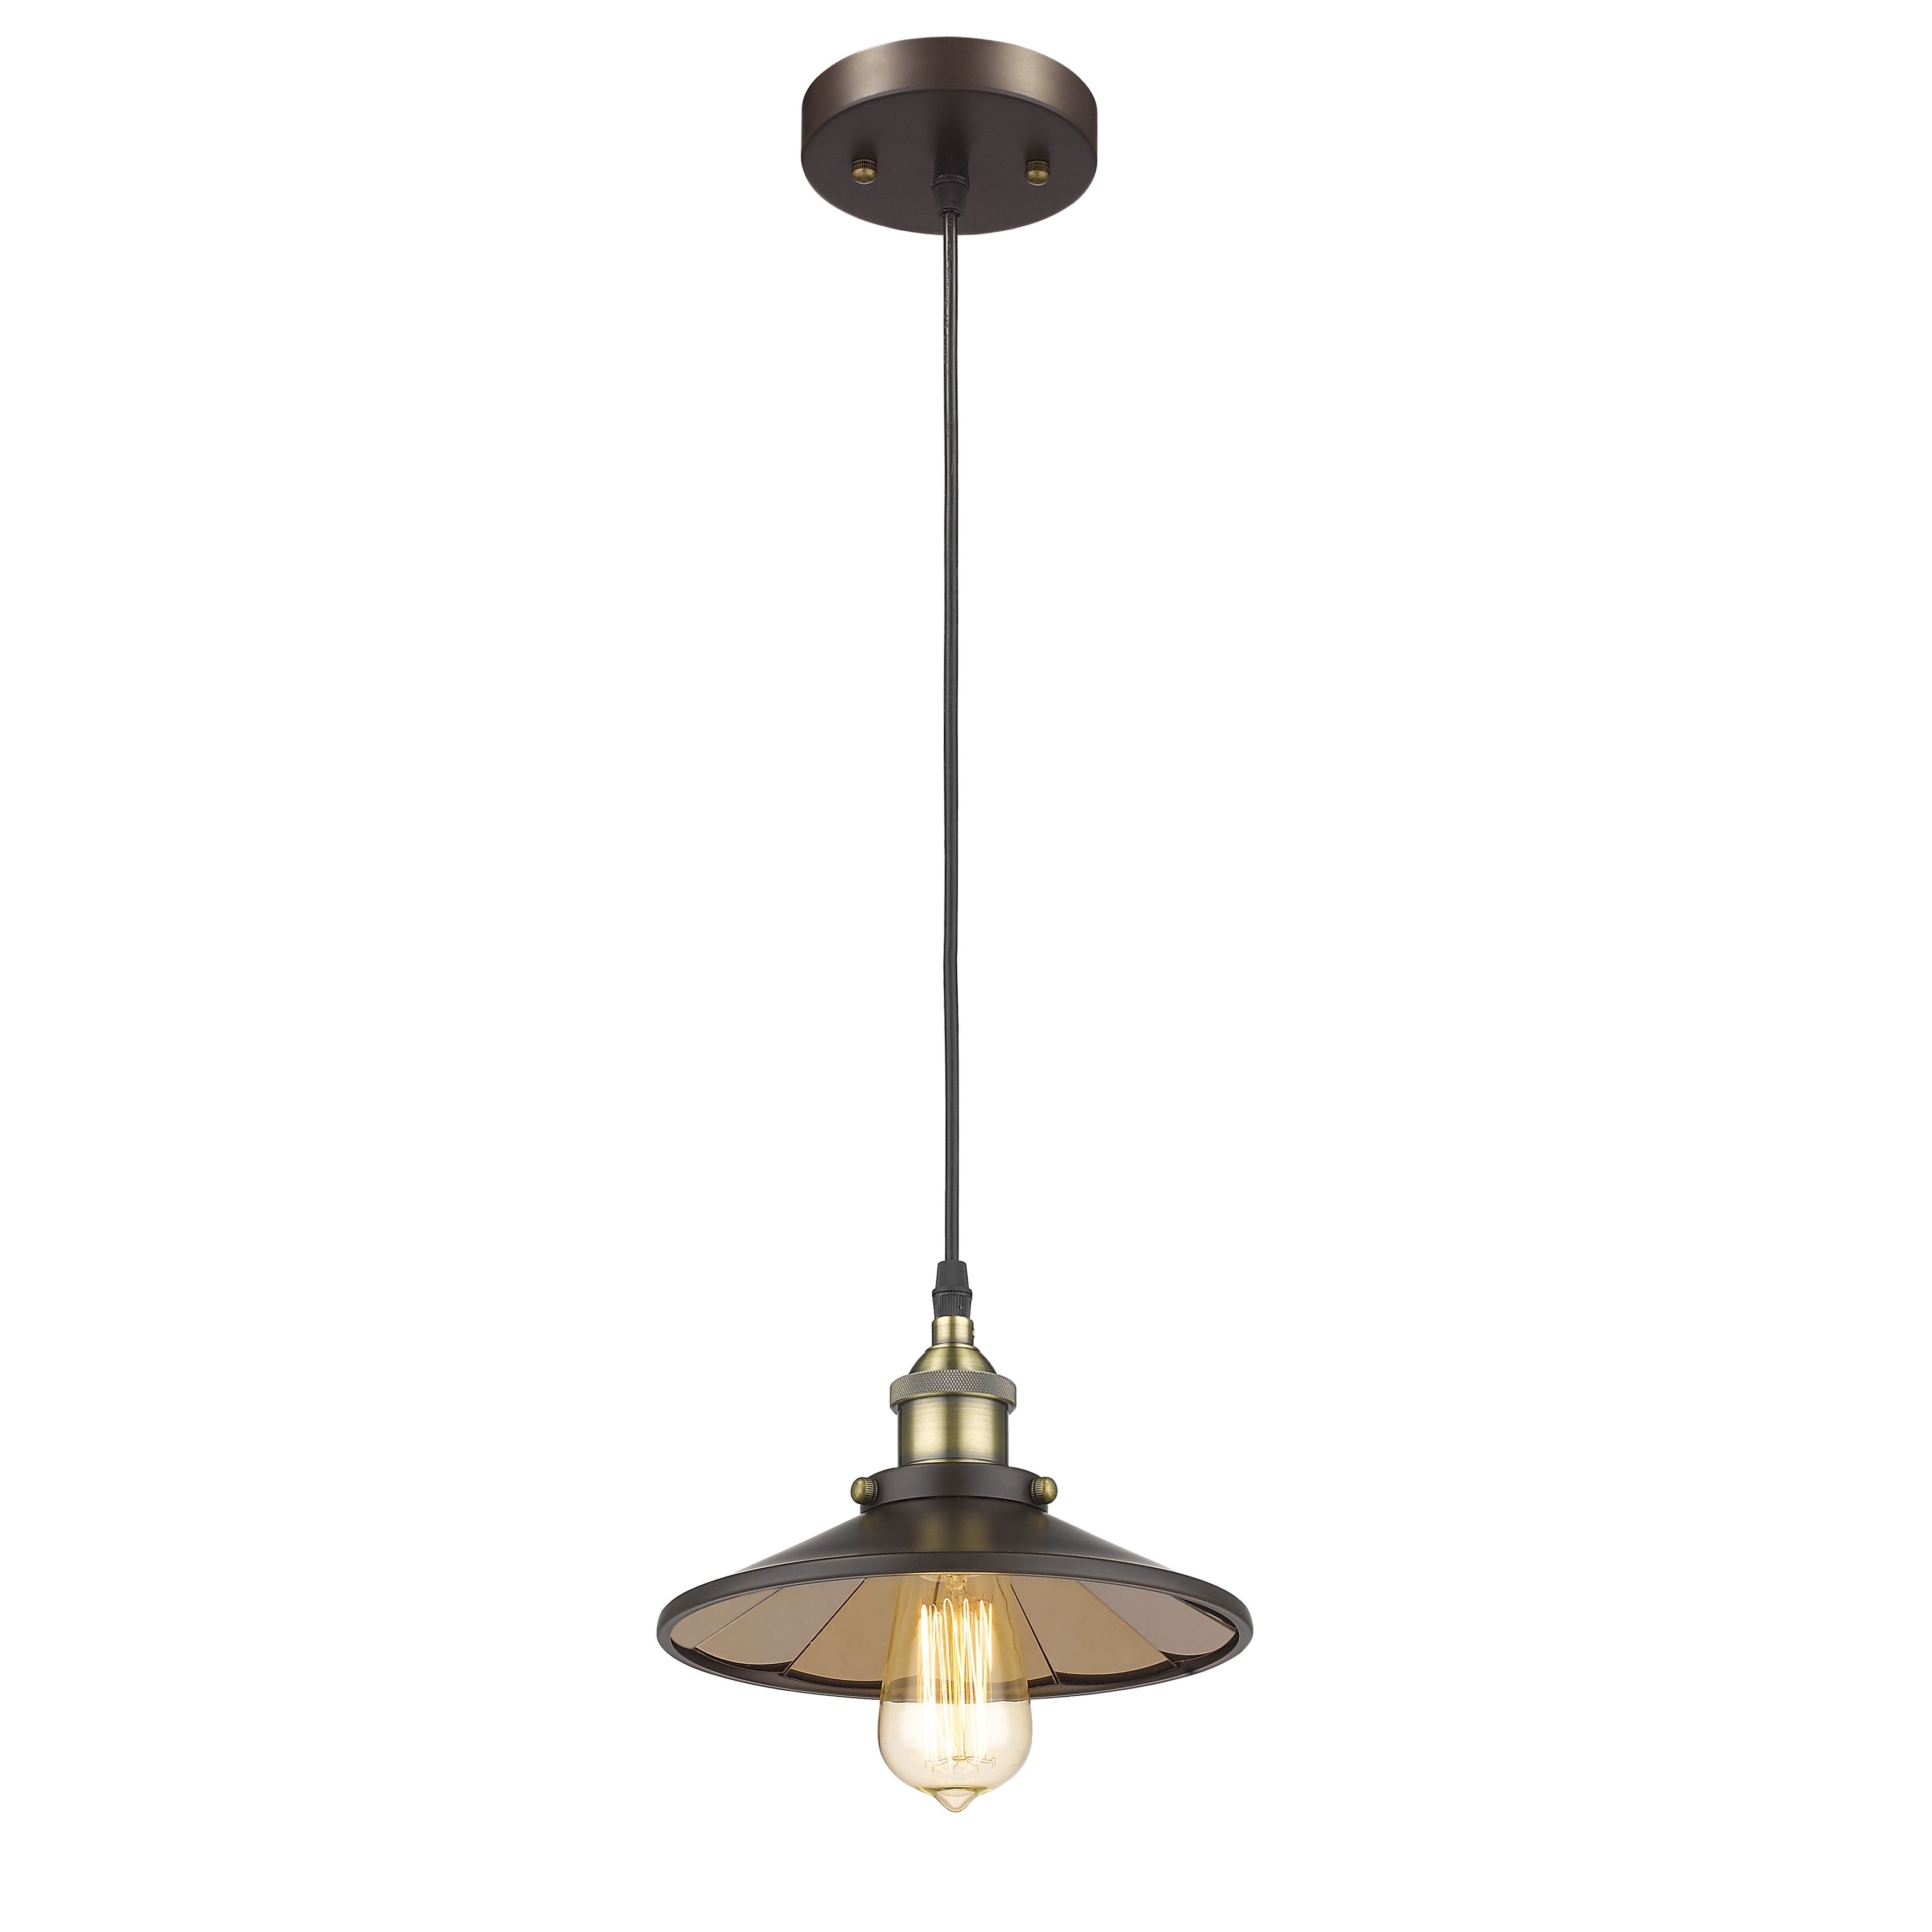 Chloe ironclad pendant from wayfair for the home kitchen